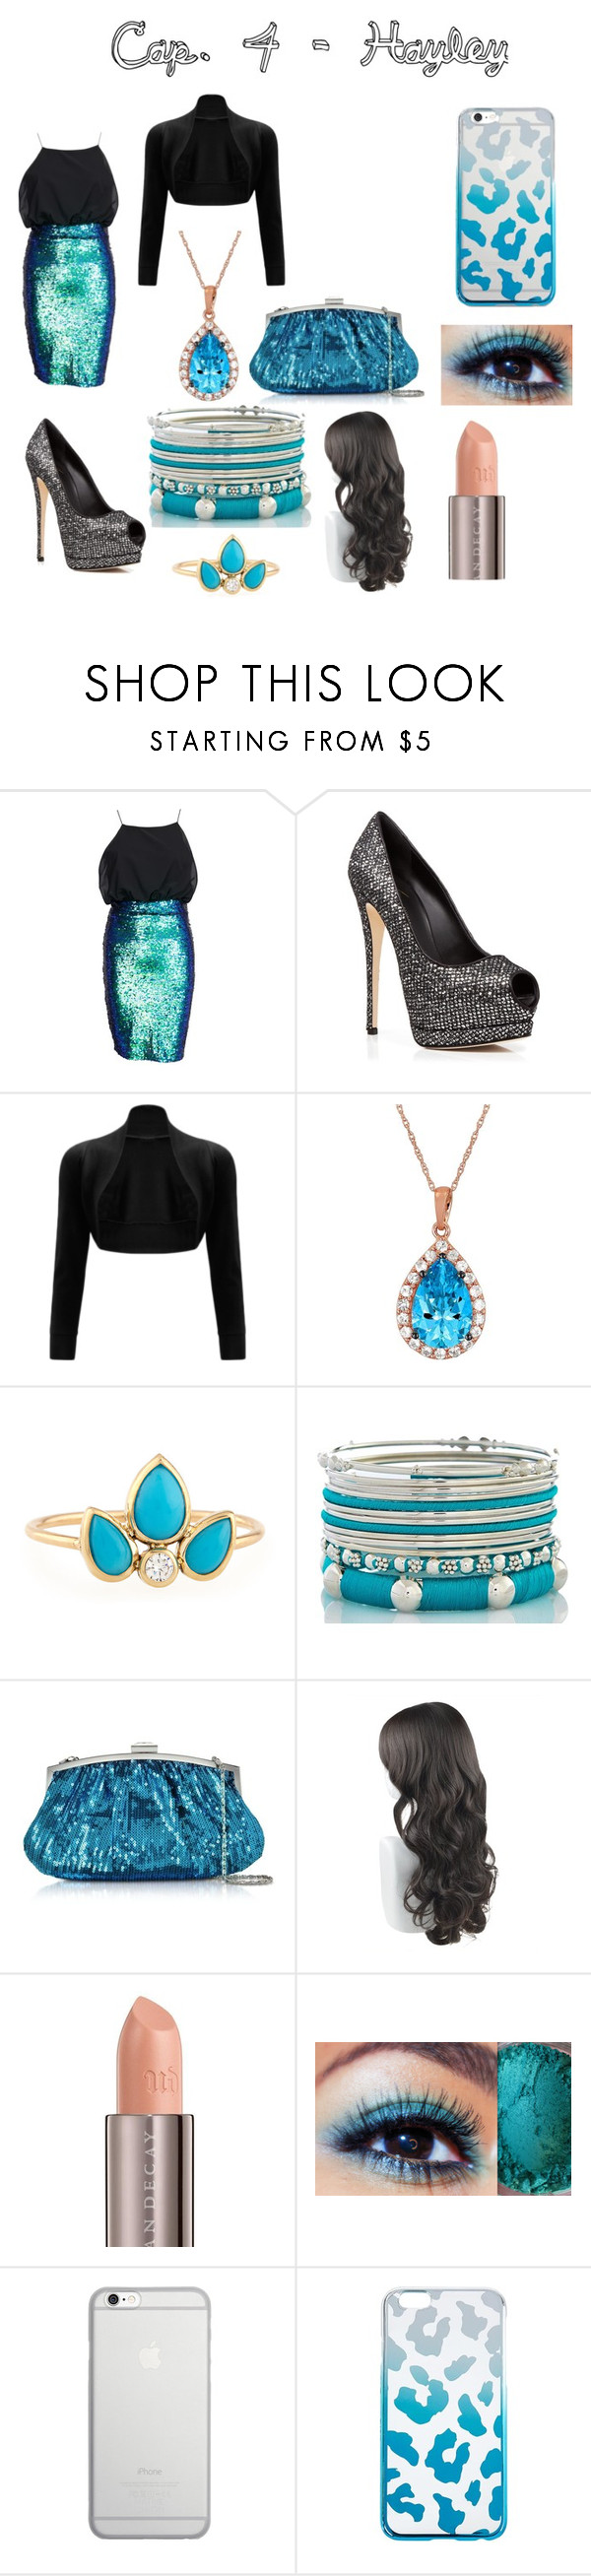 """Cap. 4 - H. Festa"" by homewrecker-idle ❤ liked on Polyvore featuring Club L, Giuseppe Zanotti, WearAll, LE VIAN, ZoÃ« Chicco, Julia Cocco', Urban Decay, Native Union, Skinnydip and plus size clothing"